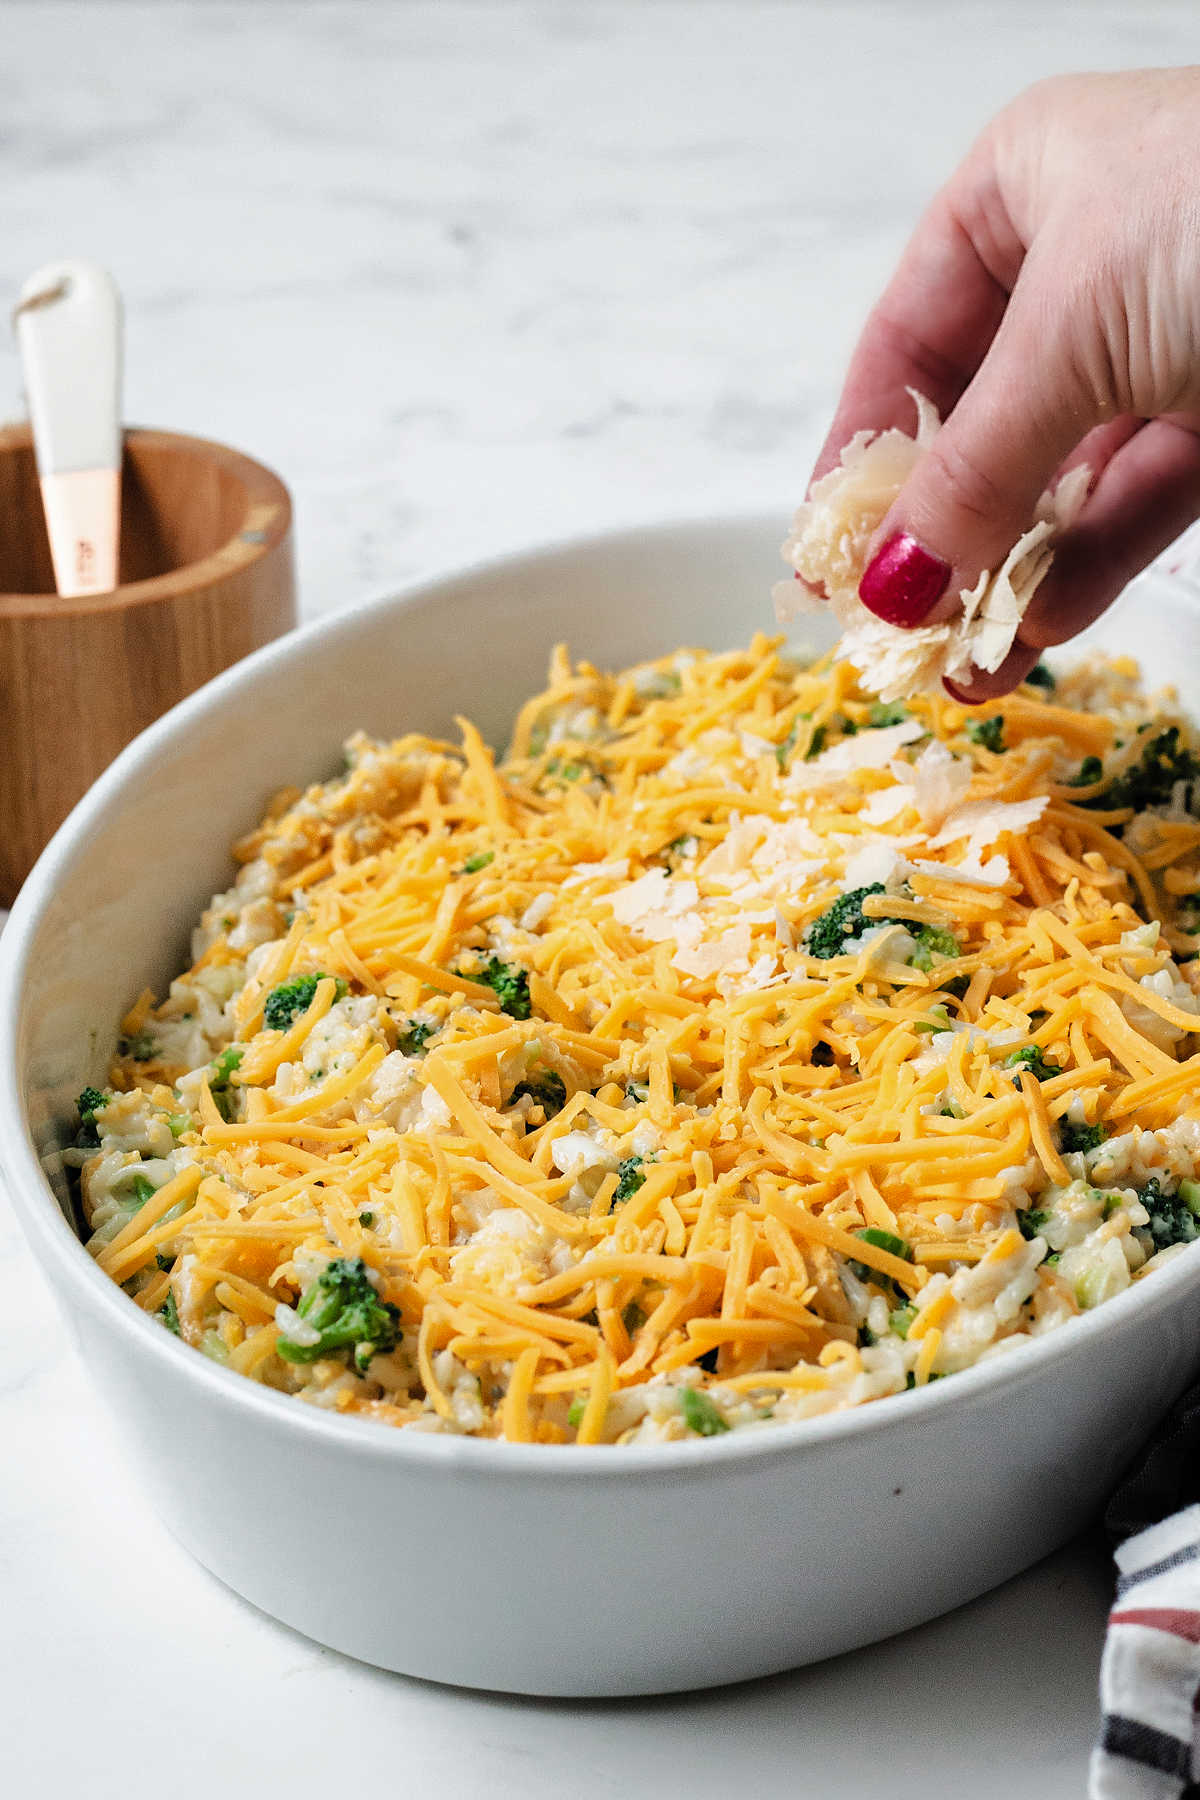 sprinkling shaved parmesan cheese on an unbaked casserole.